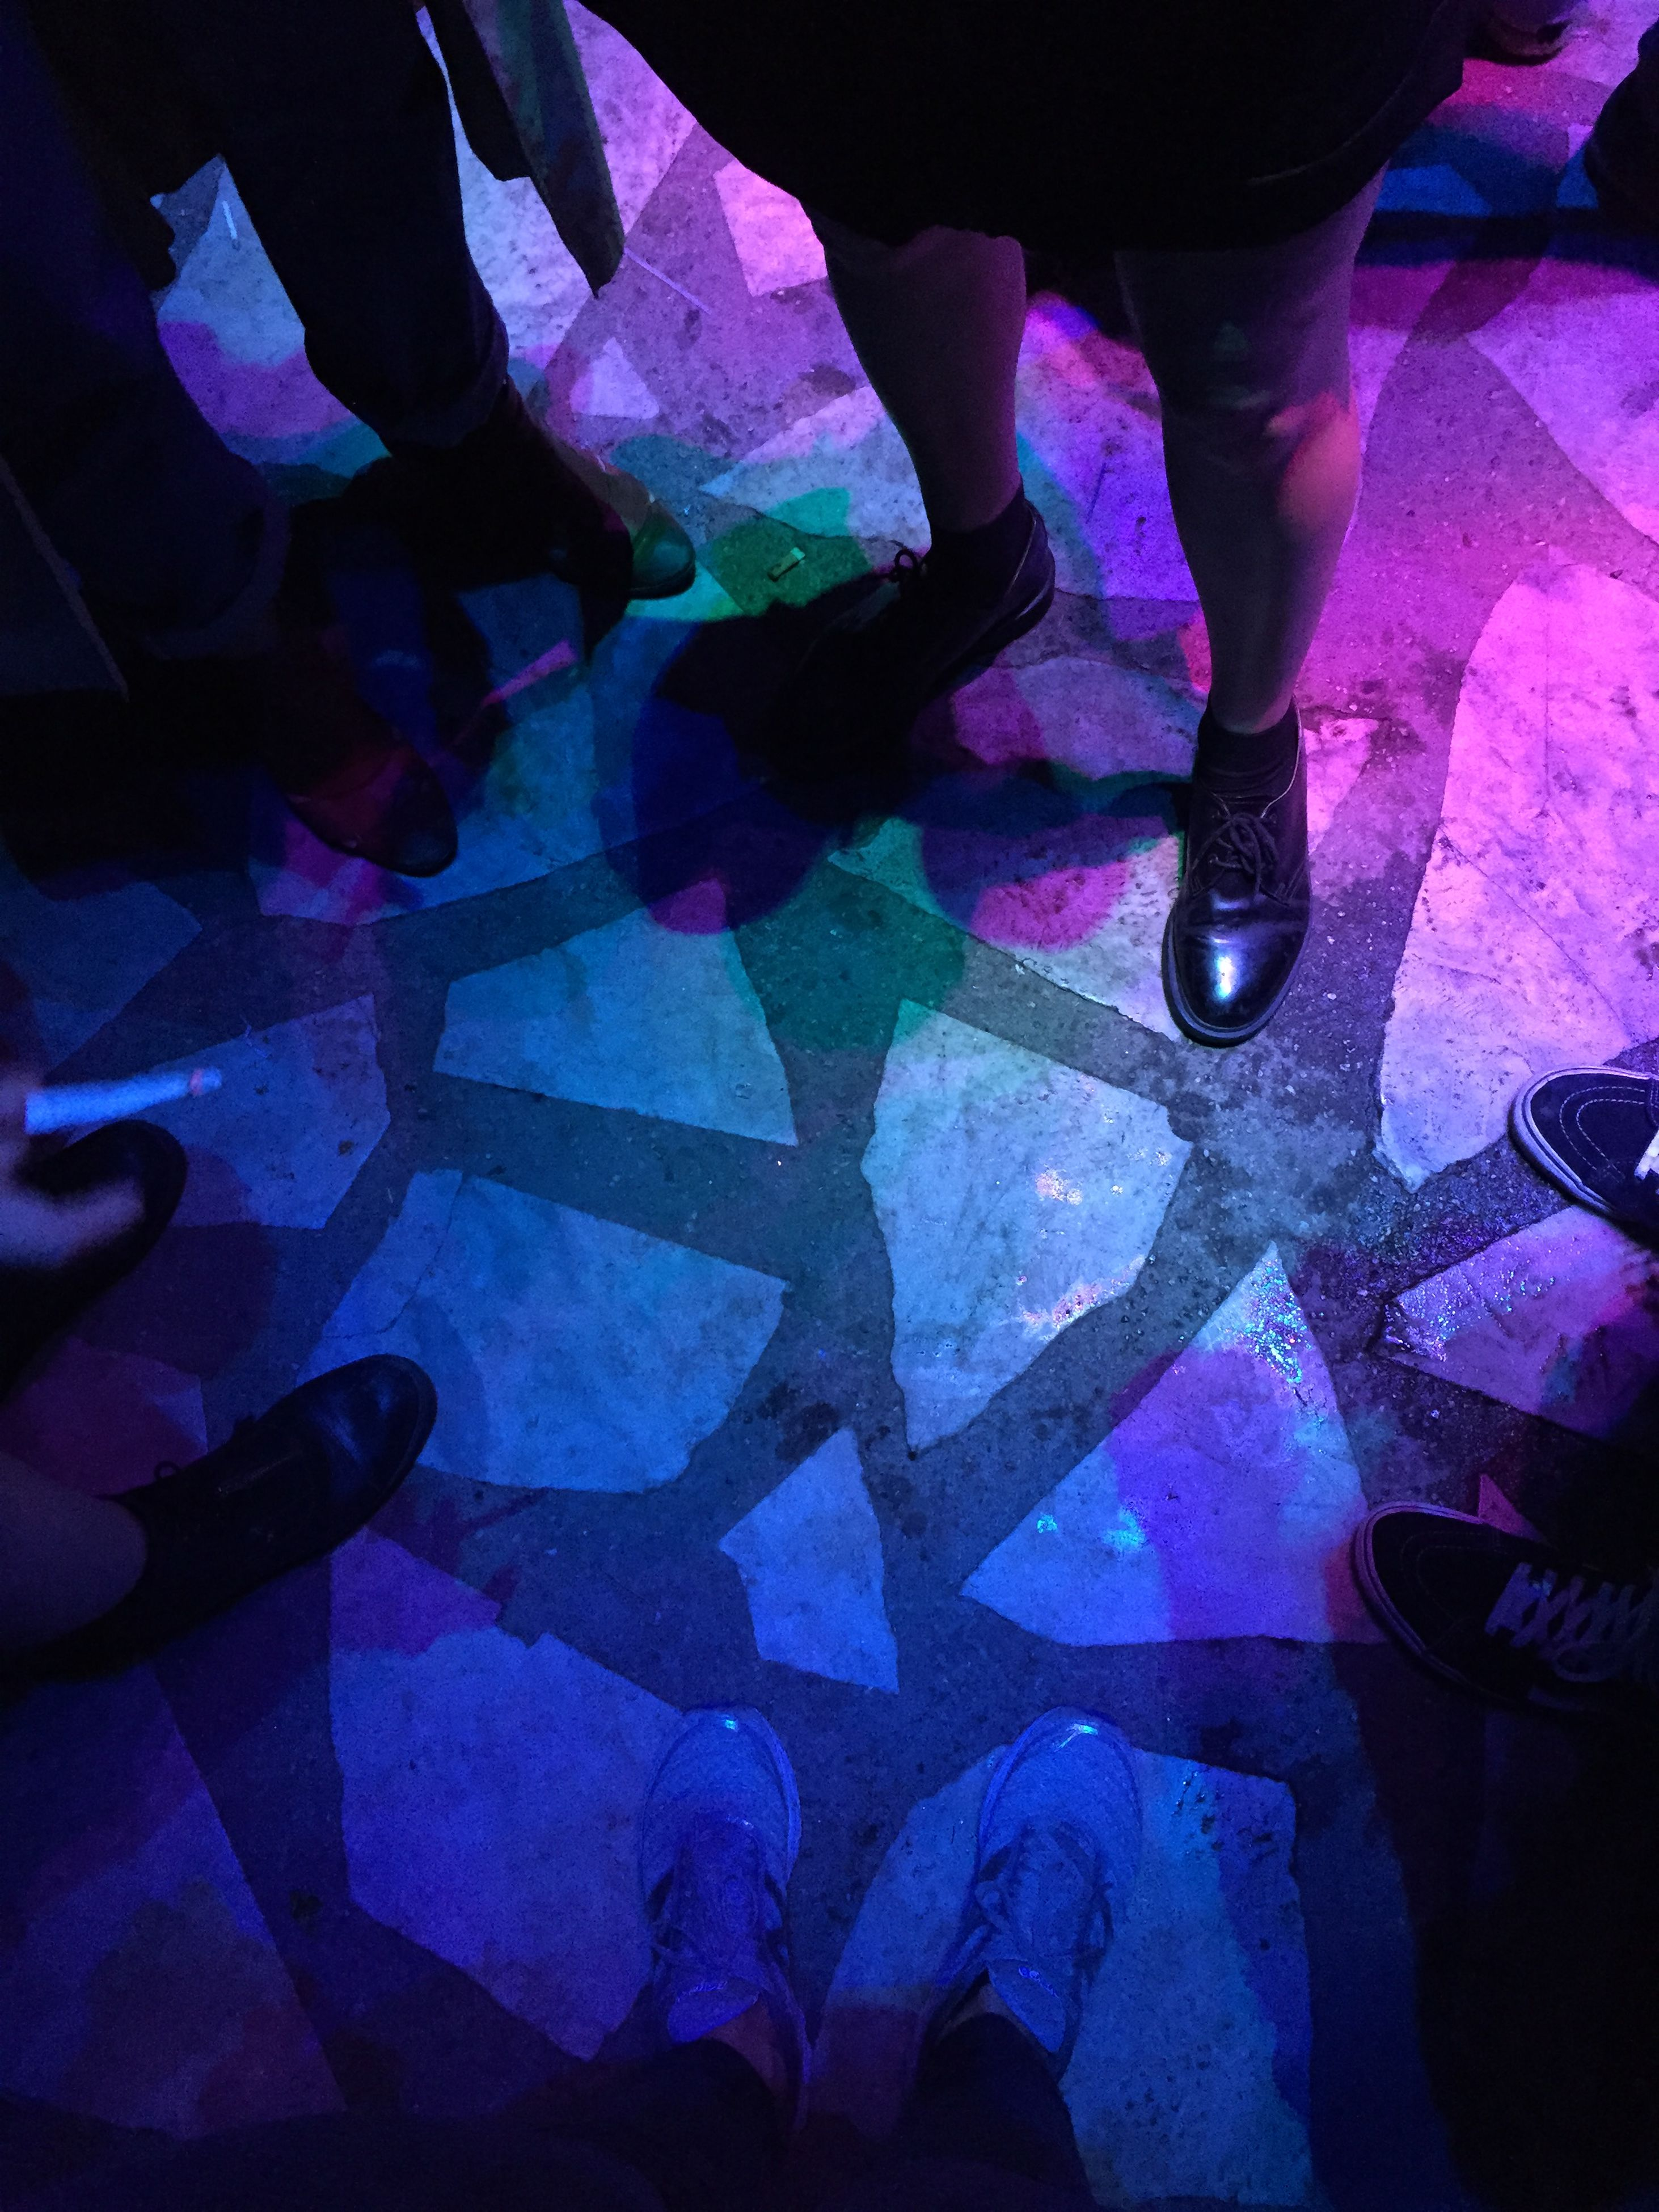 indoors, low section, lifestyles, men, person, high angle view, unrecognizable person, leisure activity, purple, night, togetherness, standing, part of, close-up